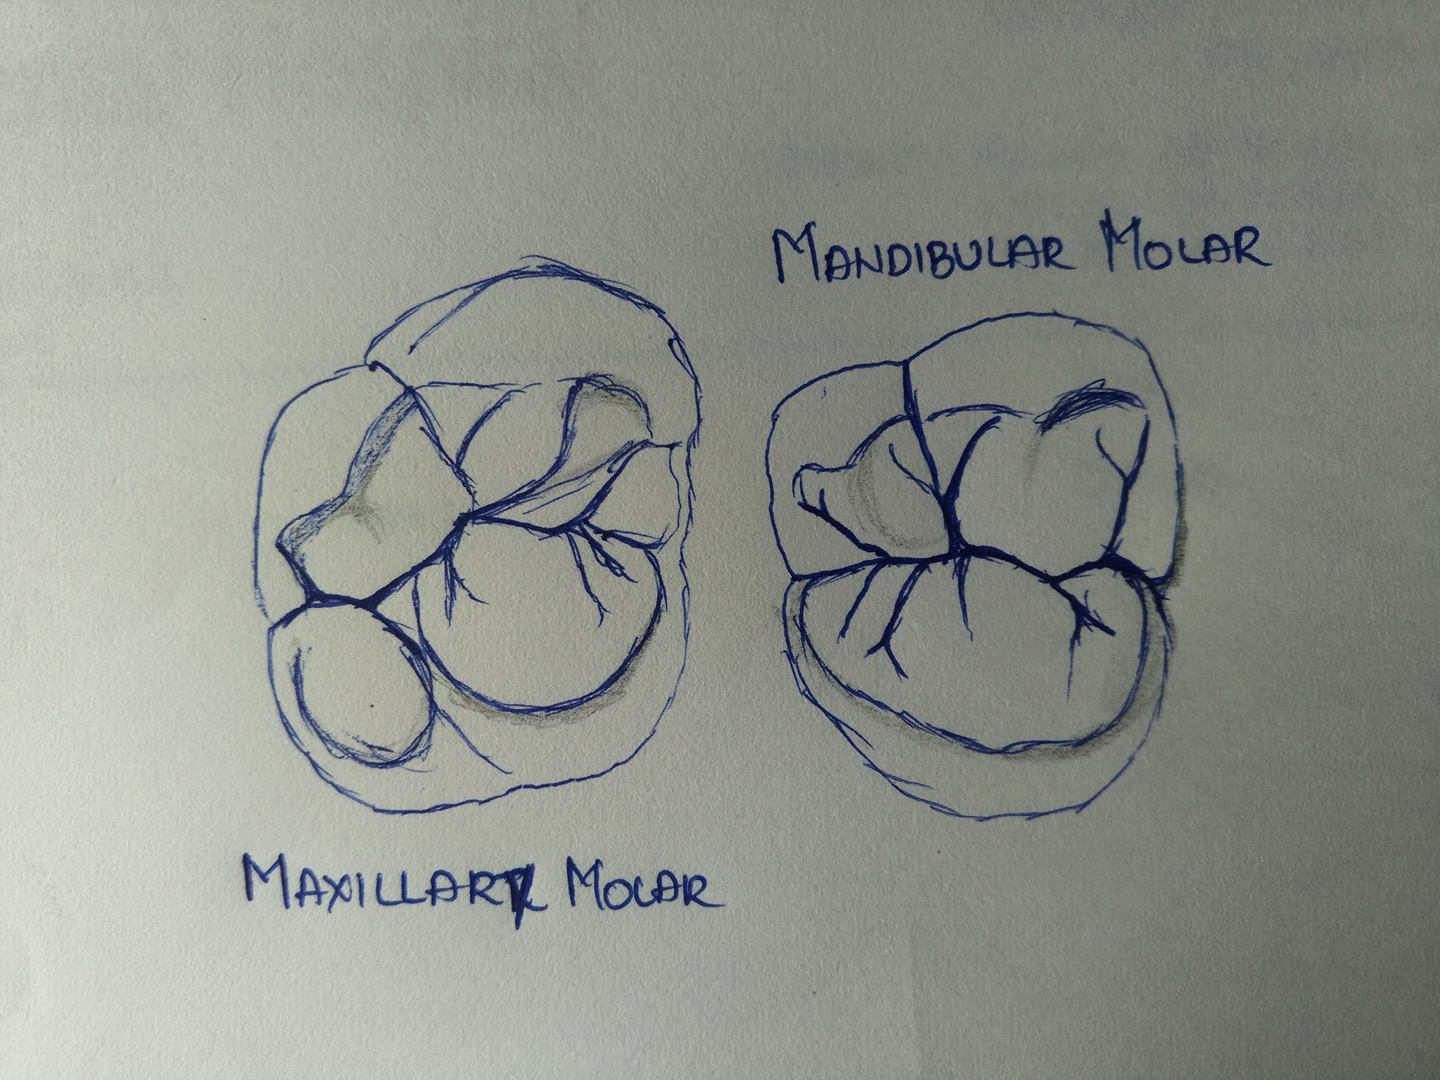 Differences between Maxillary and Mandibular First and Second Molars